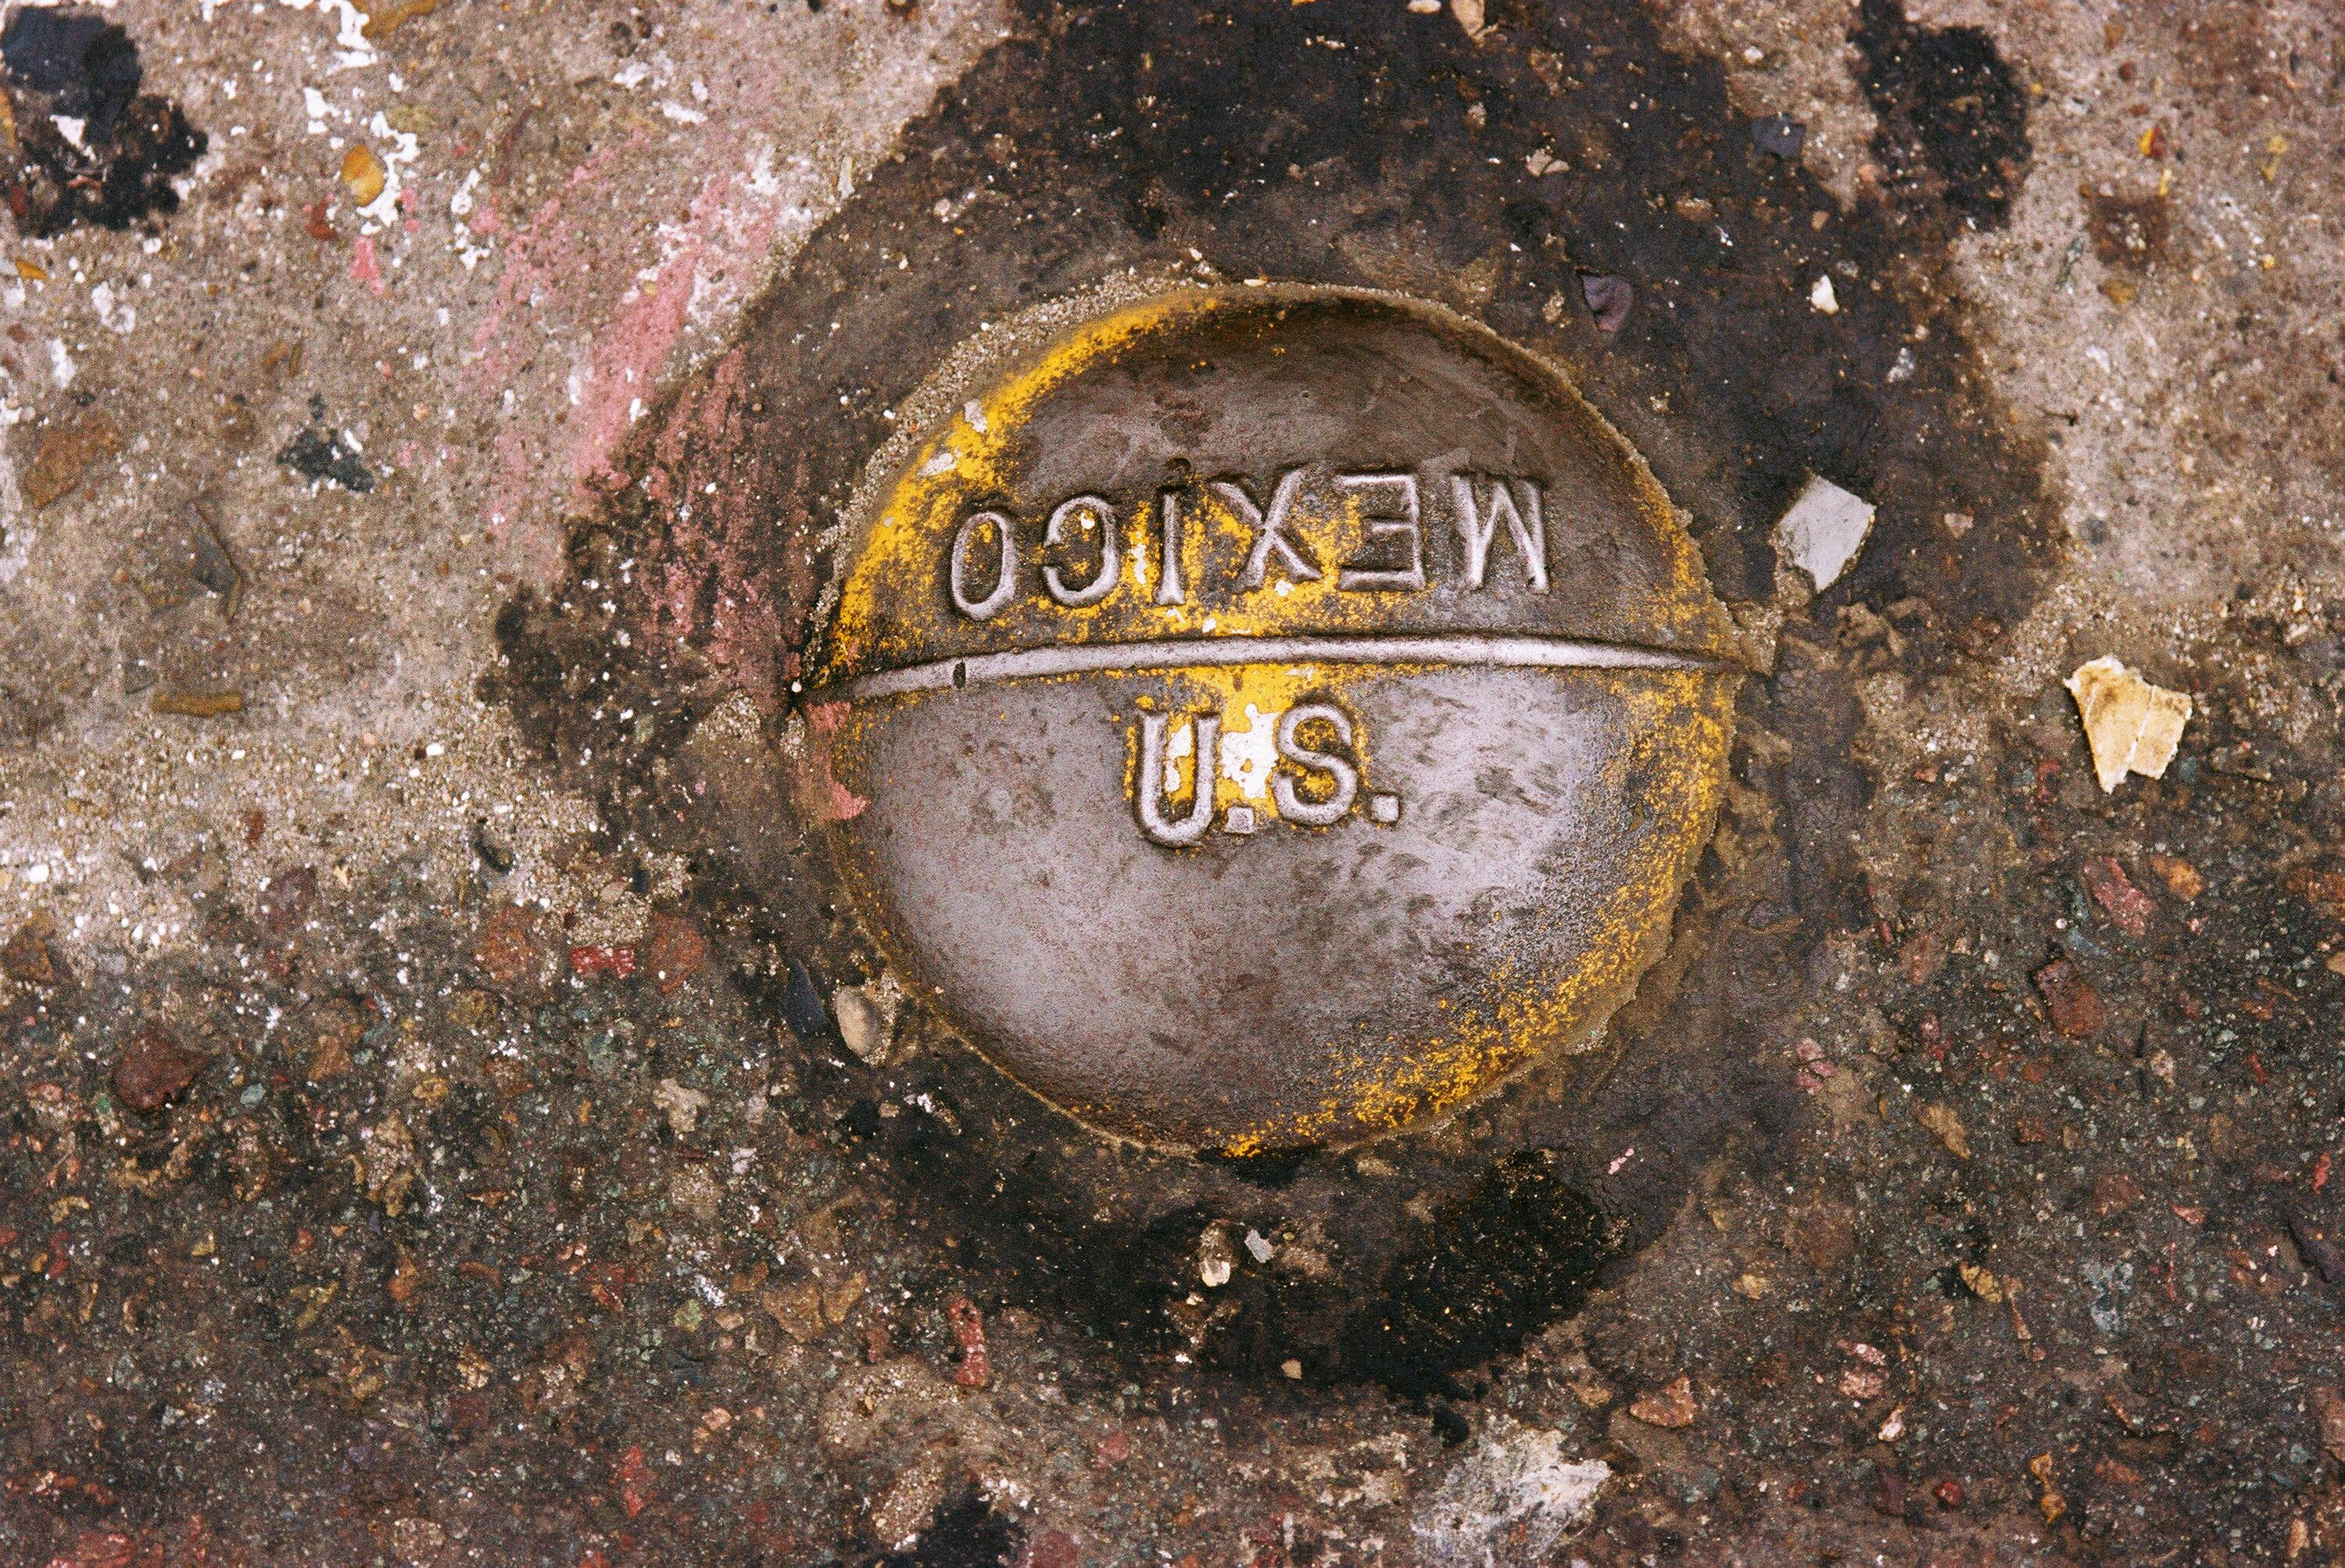 A medallion marks the spot where the U.S. and Mexican border meet.